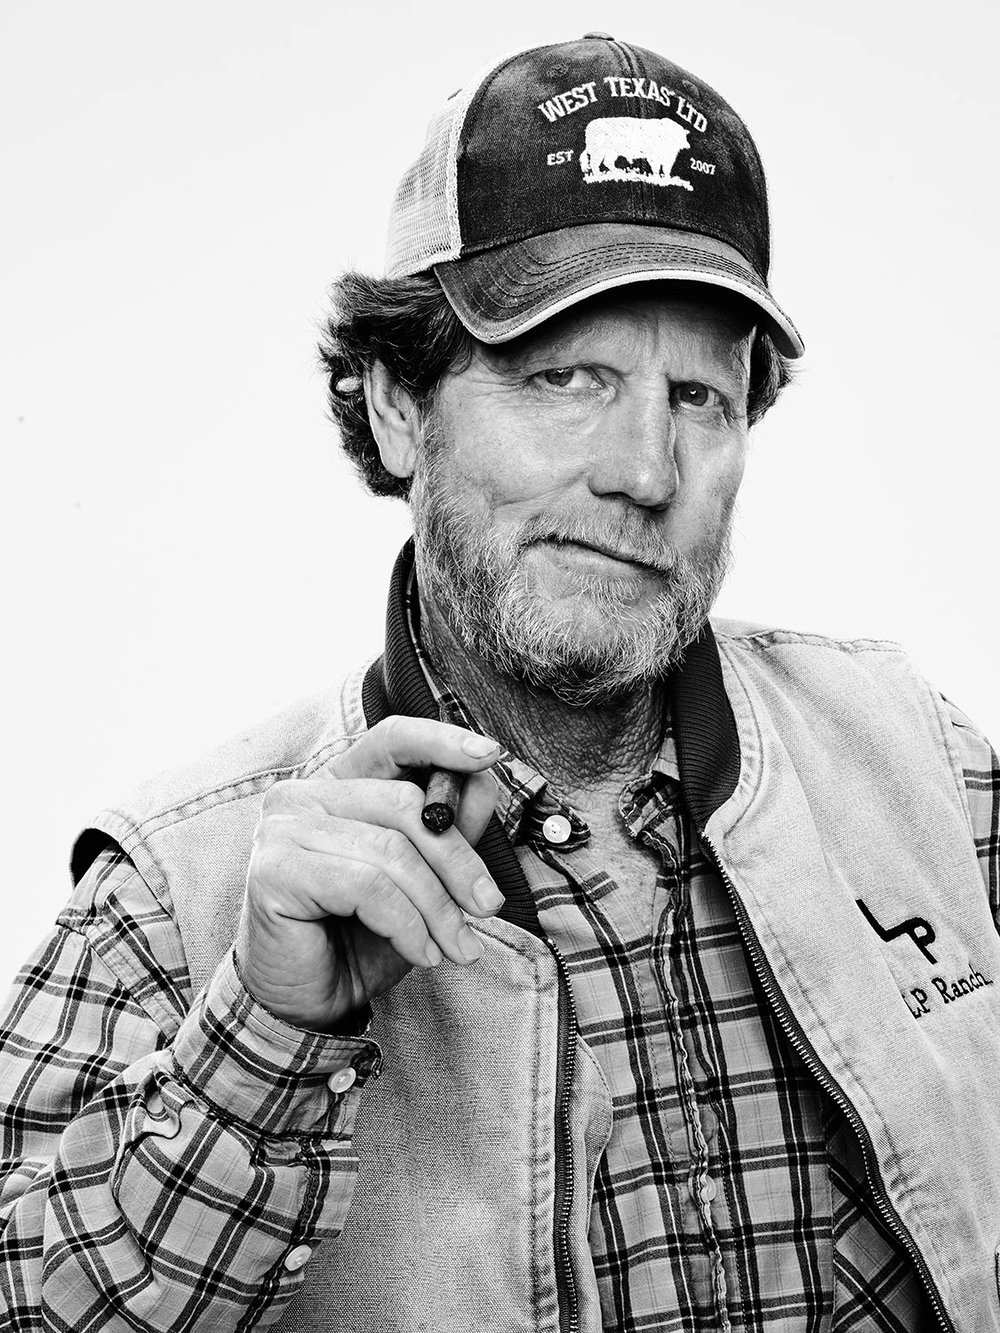 rooster_mcconaughey_WTIC_portrait.jpg